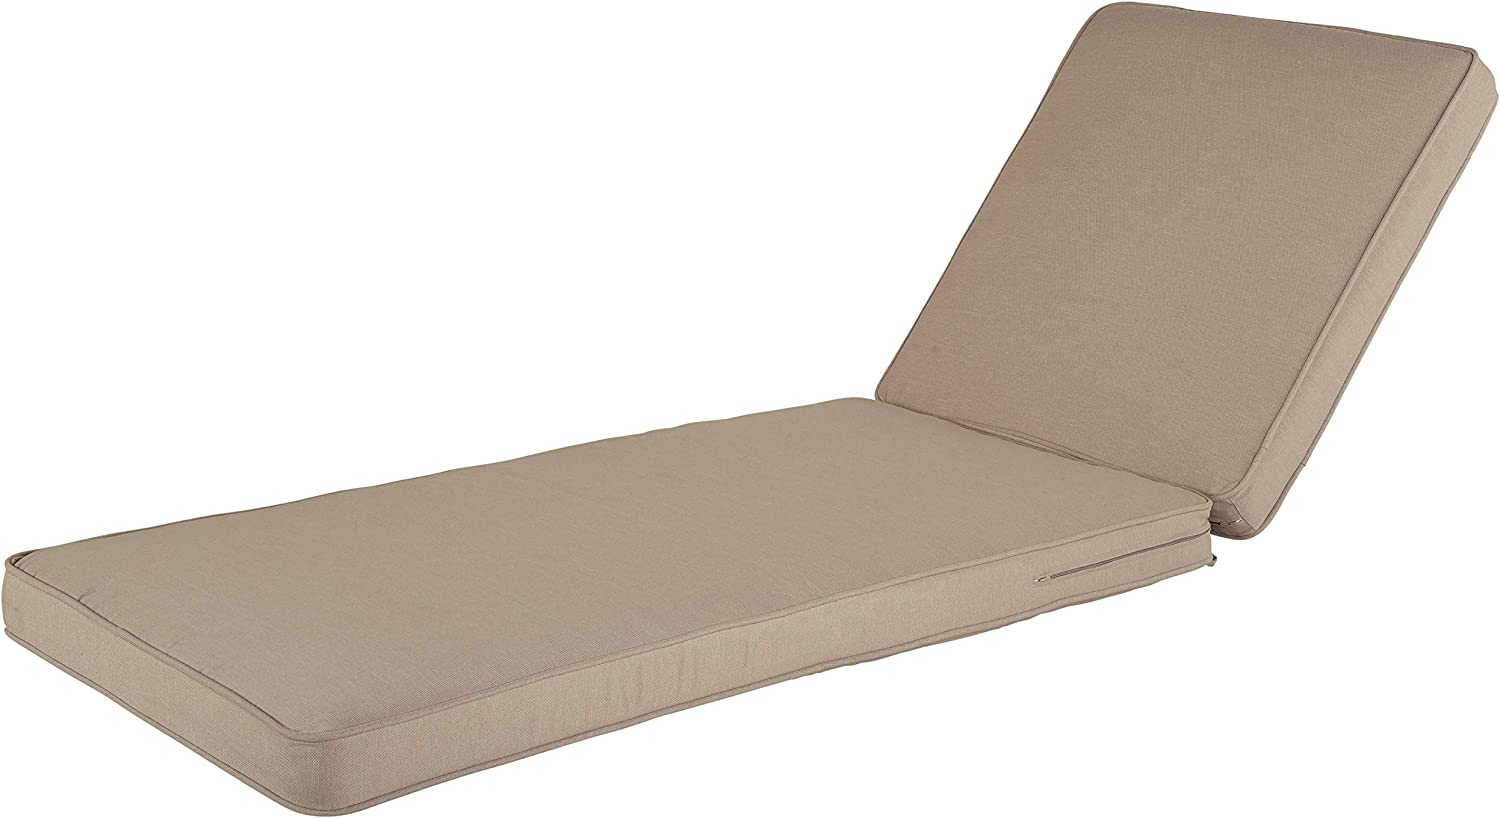 Quality Outdoor Living All Weather Deep Seating Patio Chaise Lounge Seat and Back Cushion Set, 23-Inch by 52-Inch, Beige